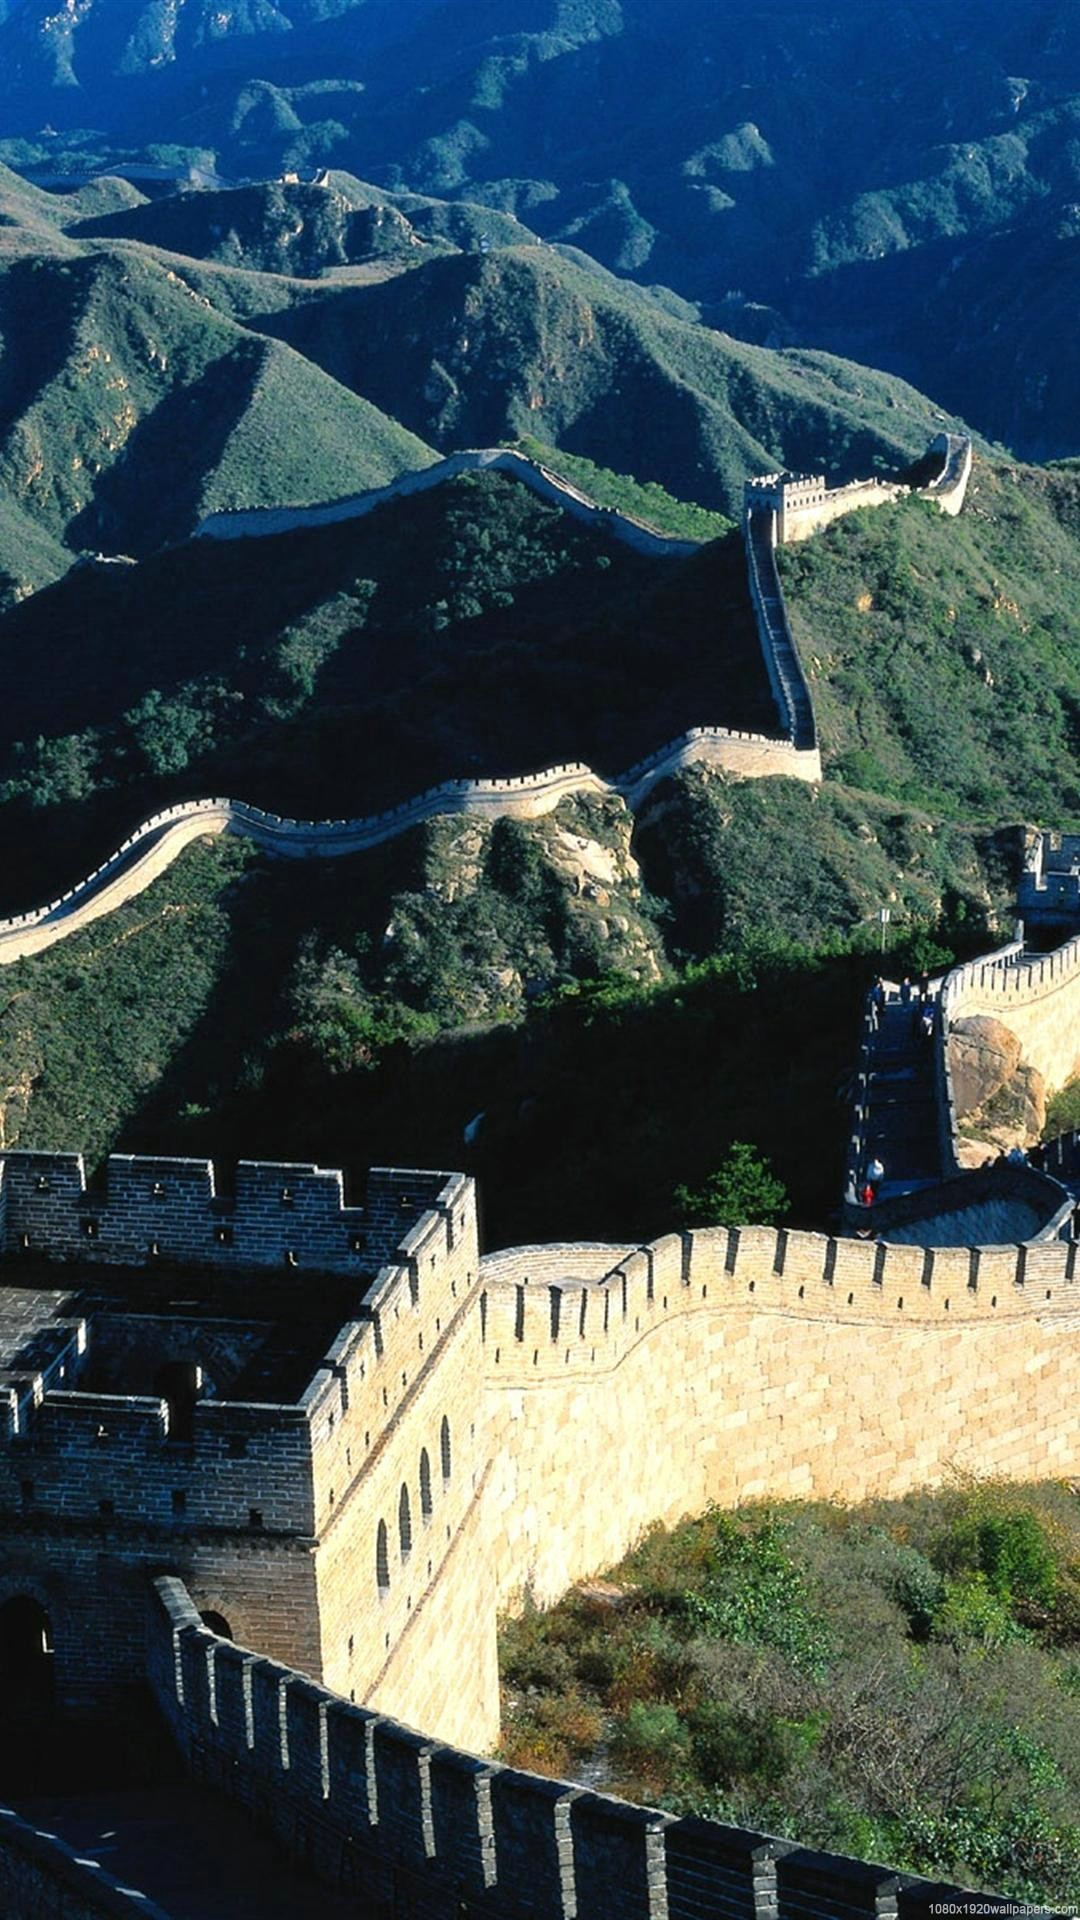 The Great Wall of China Wallpaper 51 images 1080x1920